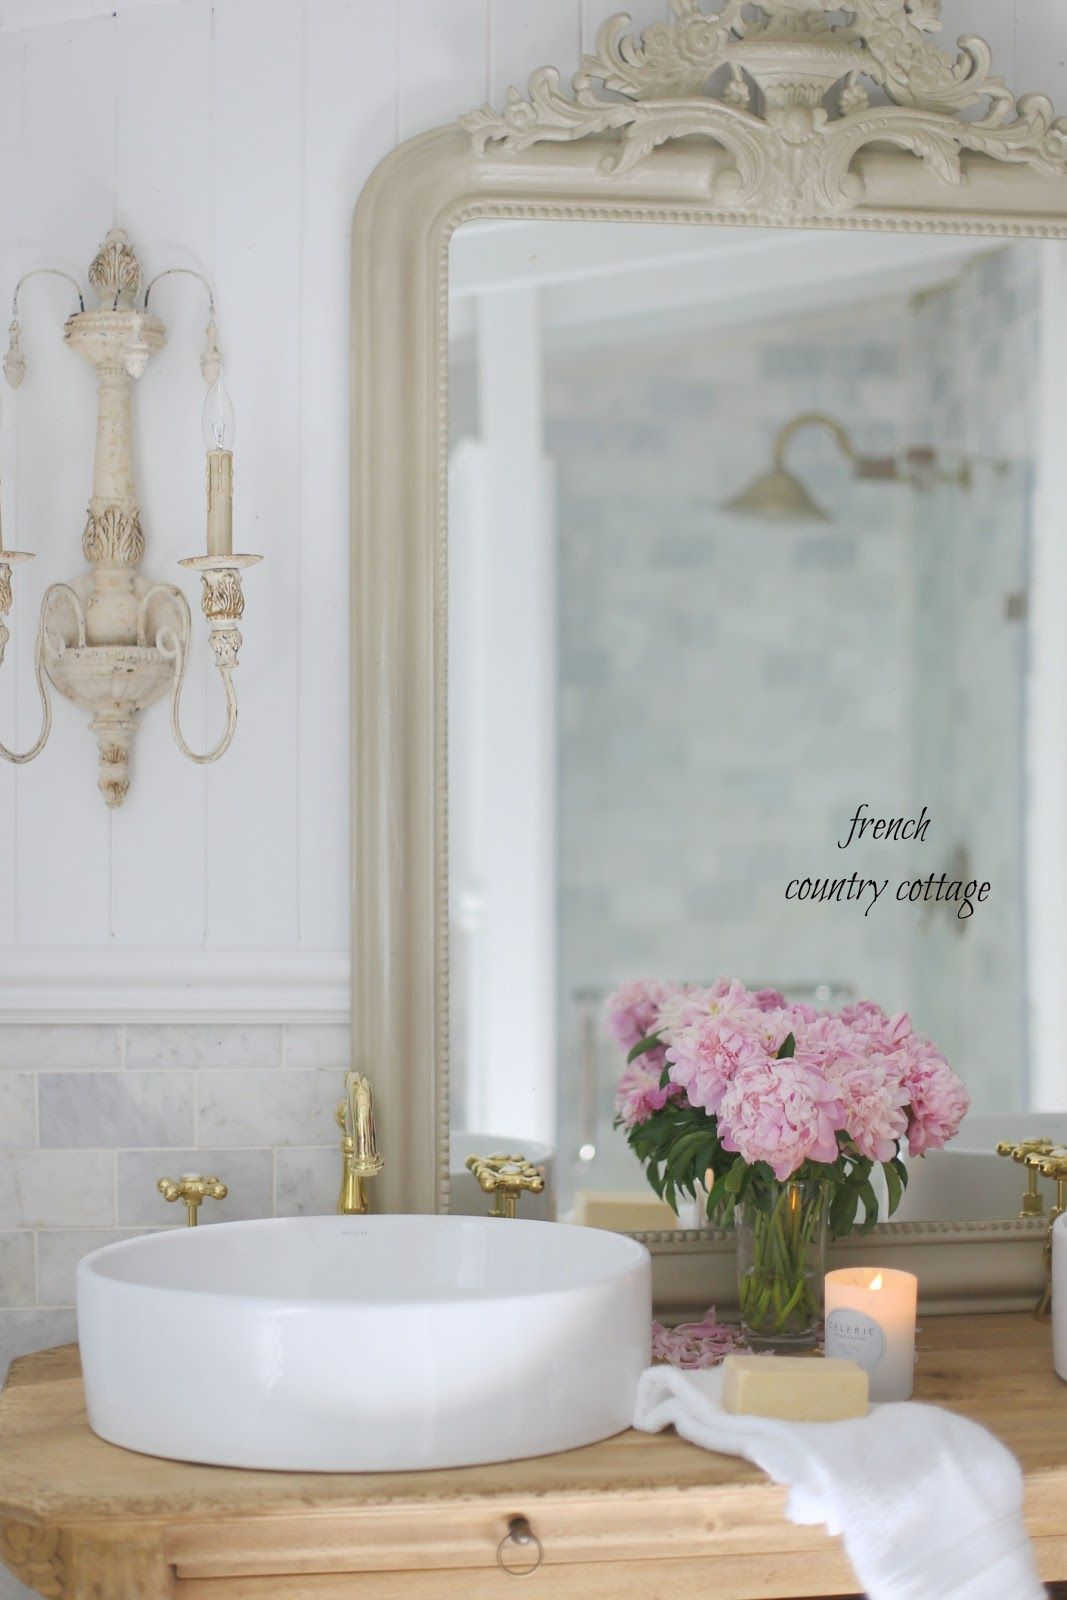 French Country Cottage Bathroom Renovation reveal custom